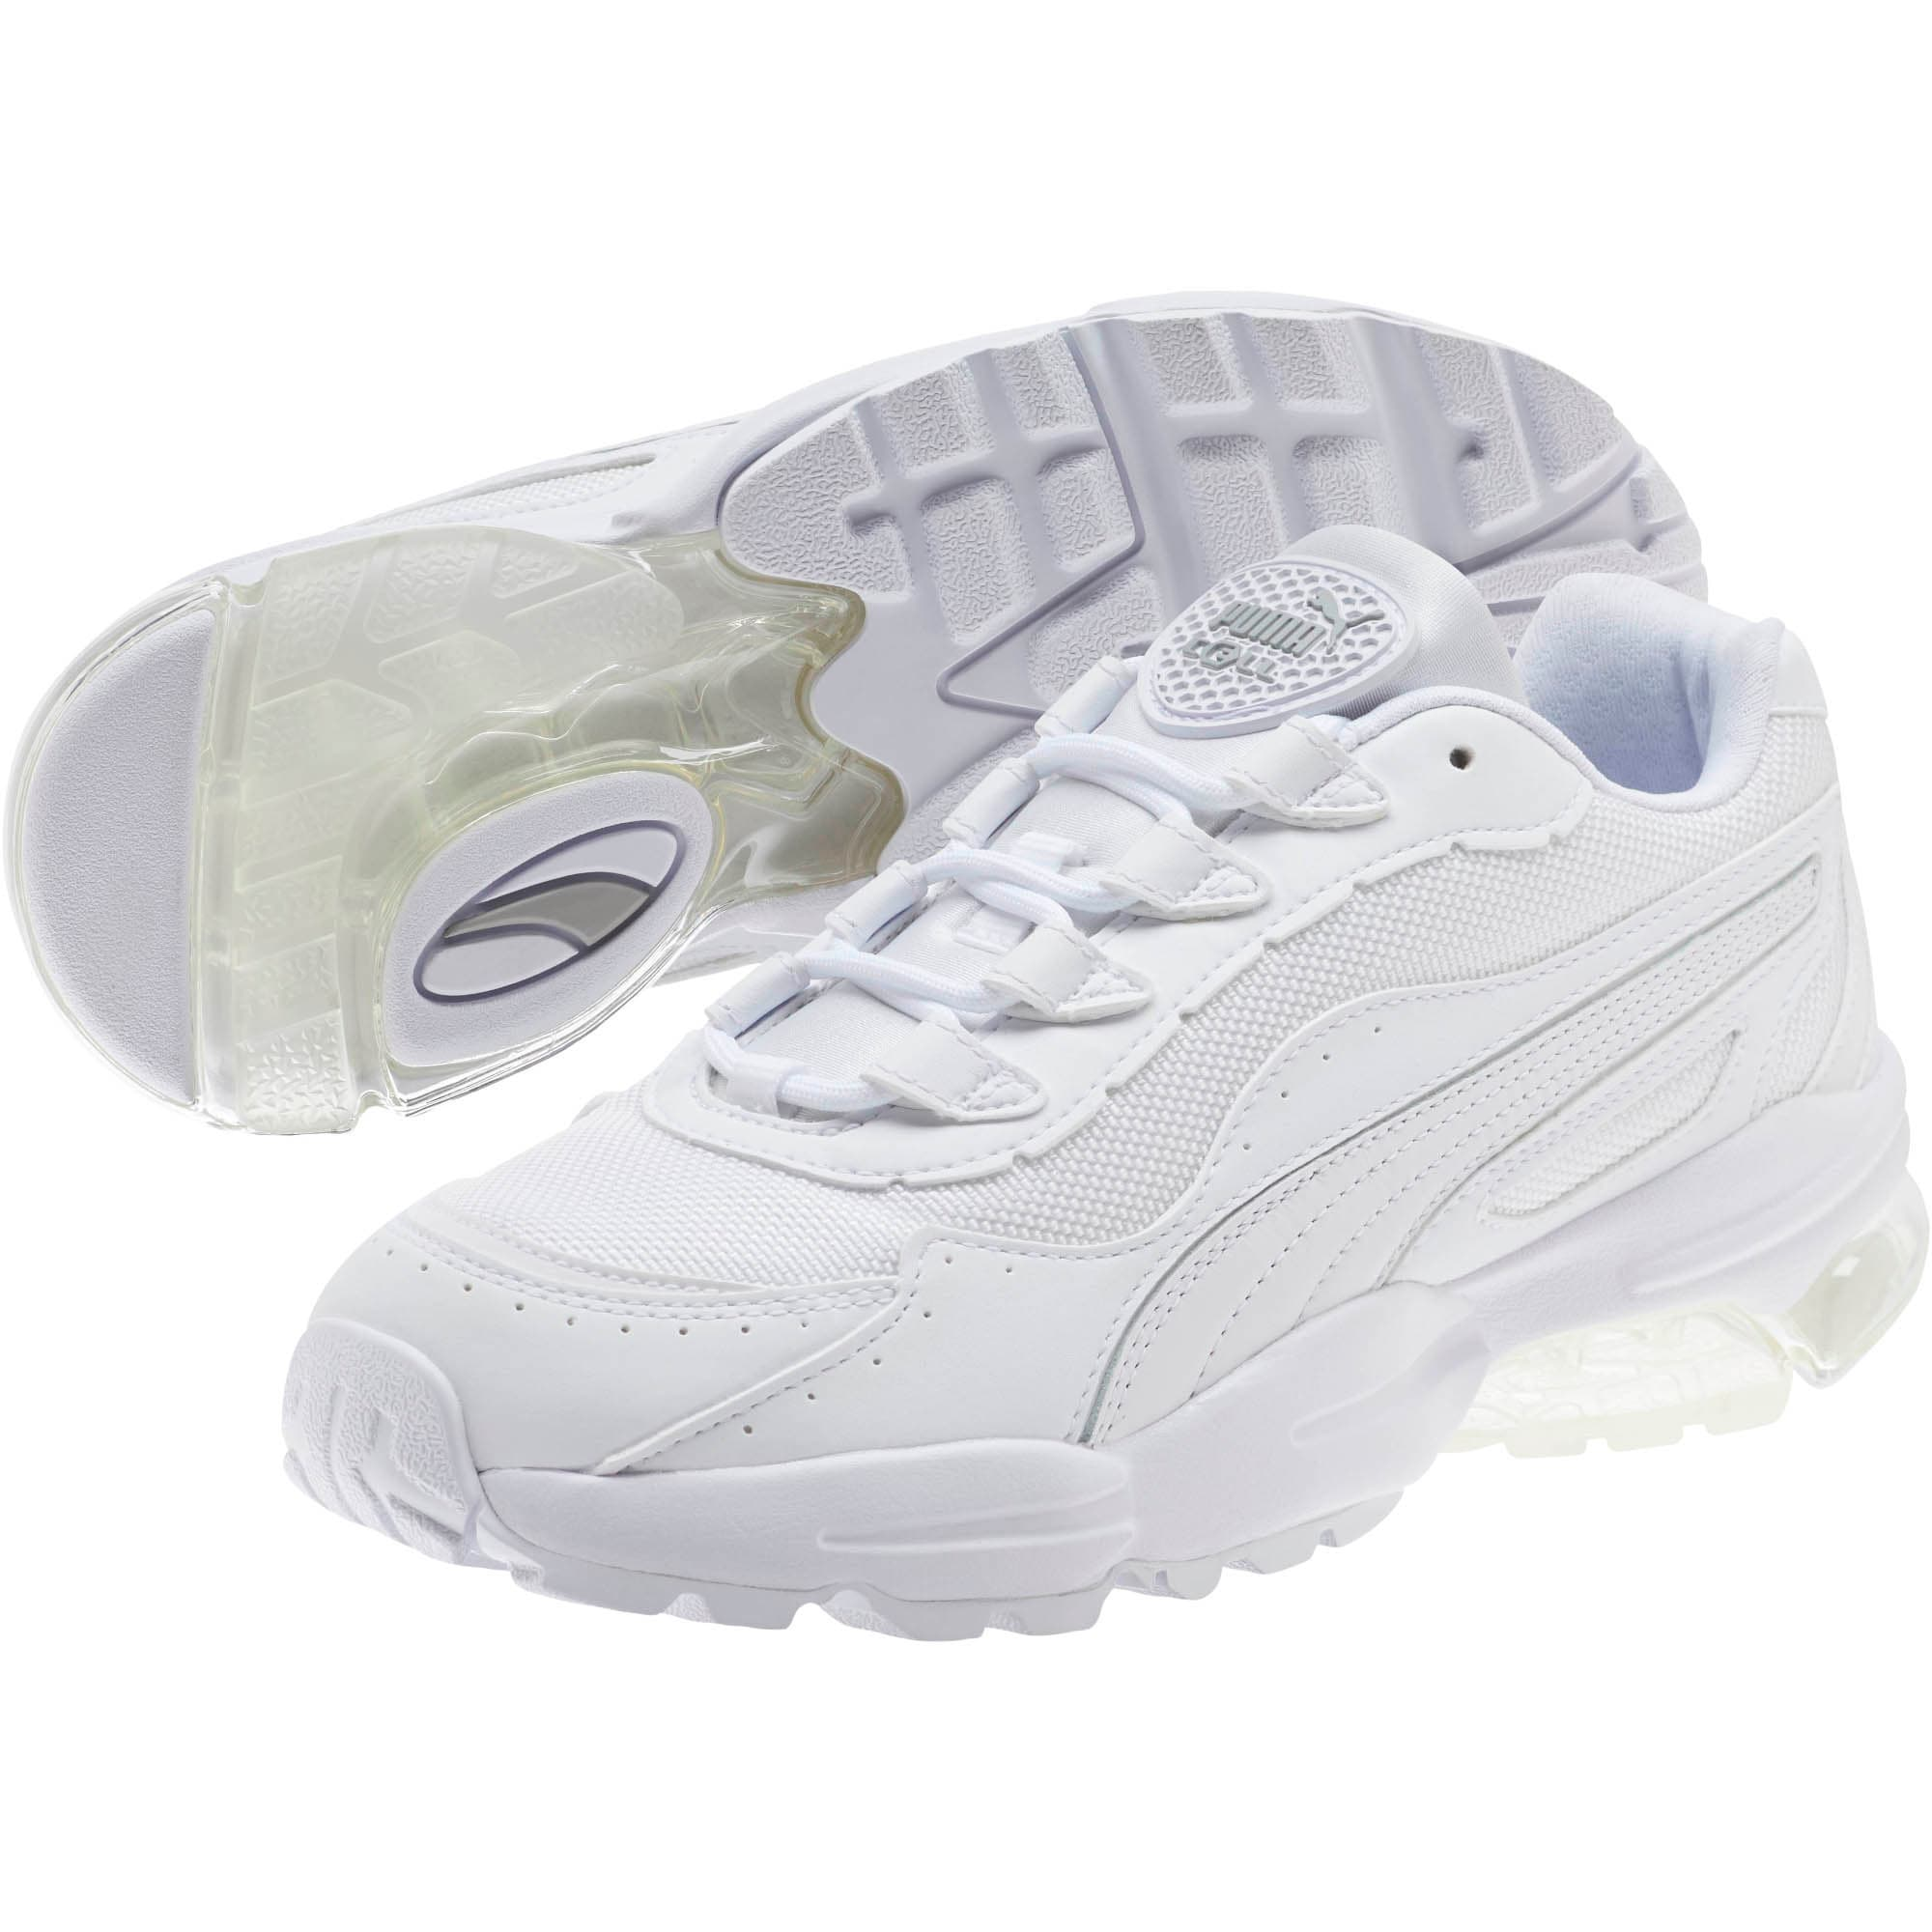 Thumbnail 2 of CELL Stellar Women's Sneakers, Puma White-Silver, medium